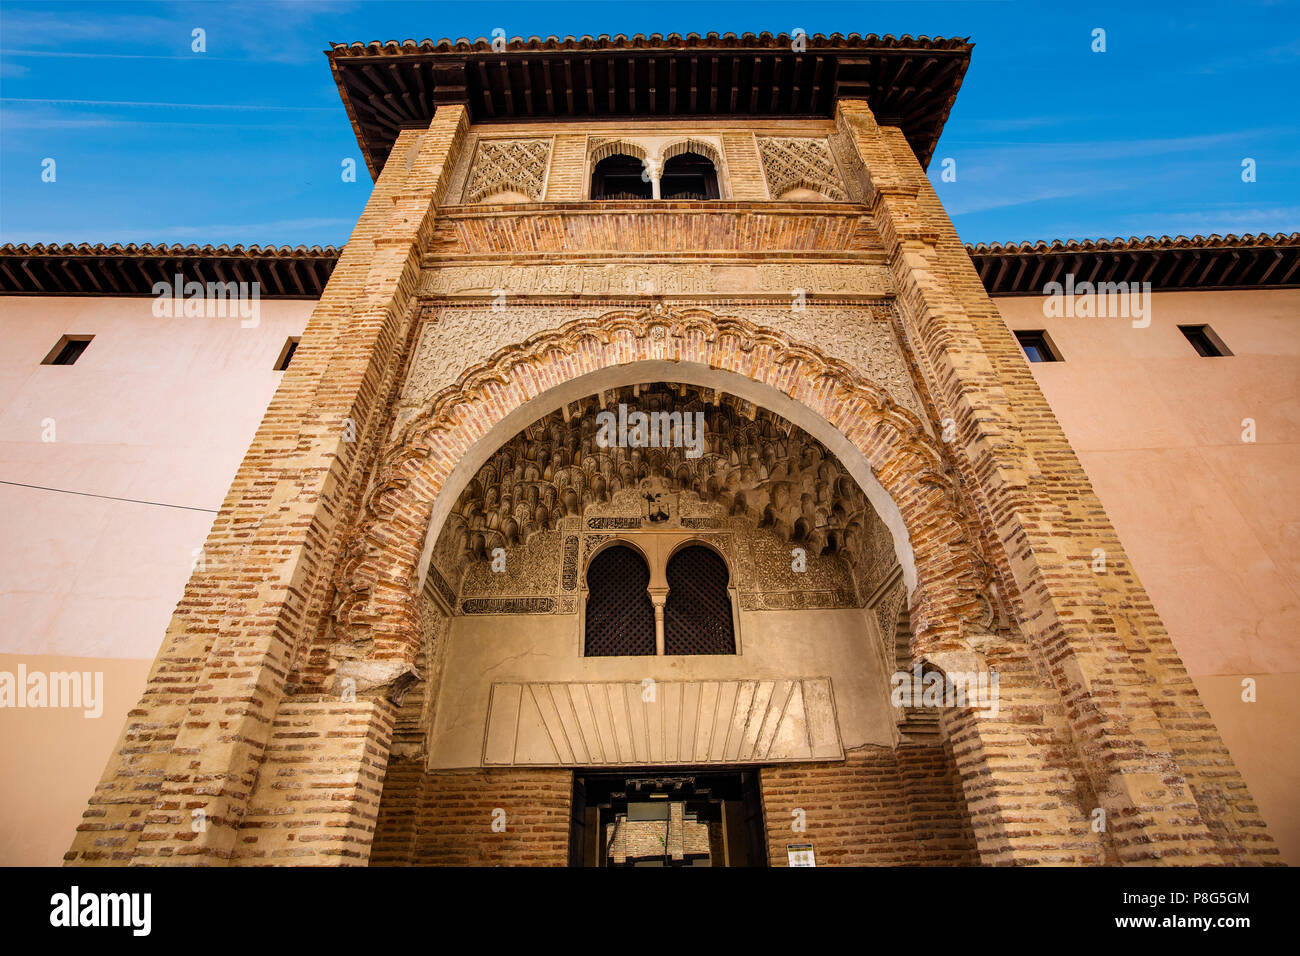 Corral de Carbón, old wheat market 14th century. Granada City. Andalusia, Southern Spain Europe Stock Photo